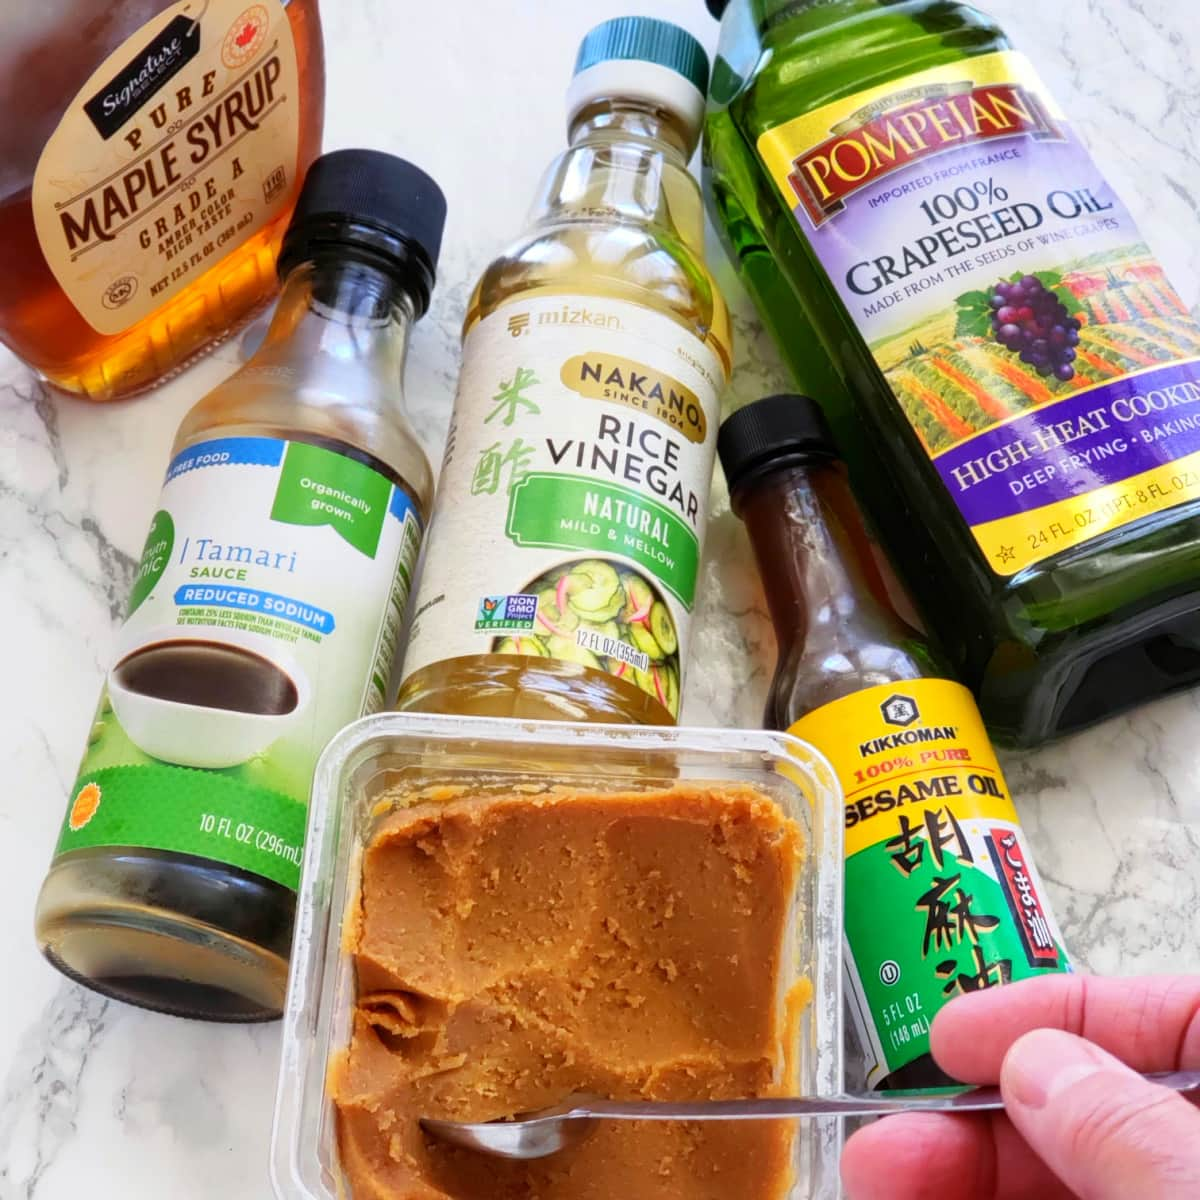 Ingredients for Sweet Miso Dressing -- maple syrup, tamari, rice vinegar, grapeseed oil, white miso and sesame oil on a marble countertop